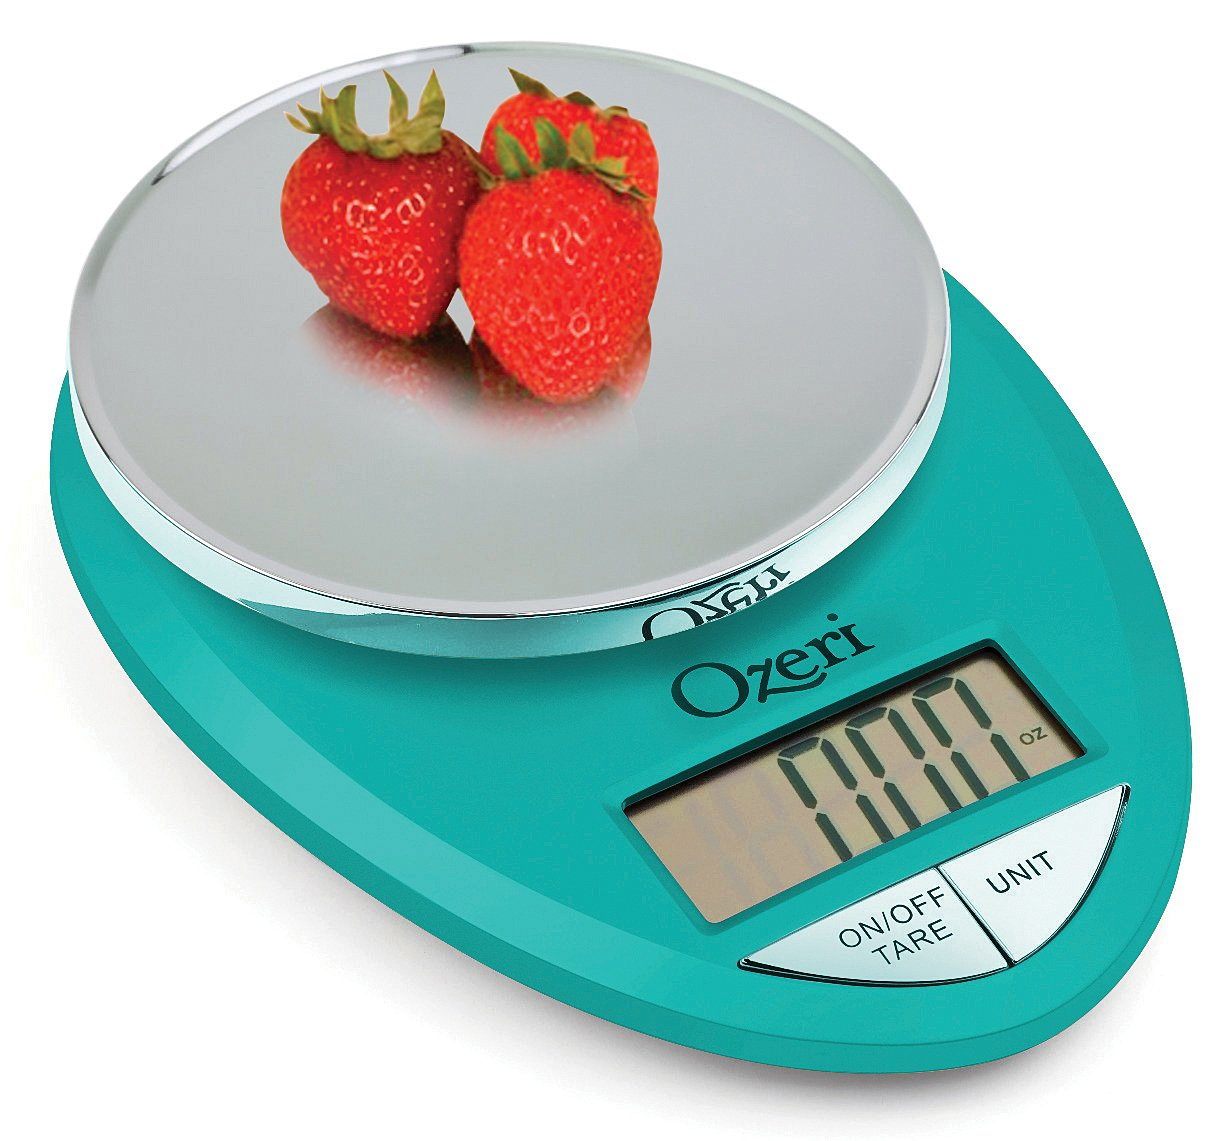 Ozeri ZK12-T Pro Digital Kitchen Food Scale, 1g/12 lb, Teal Blue